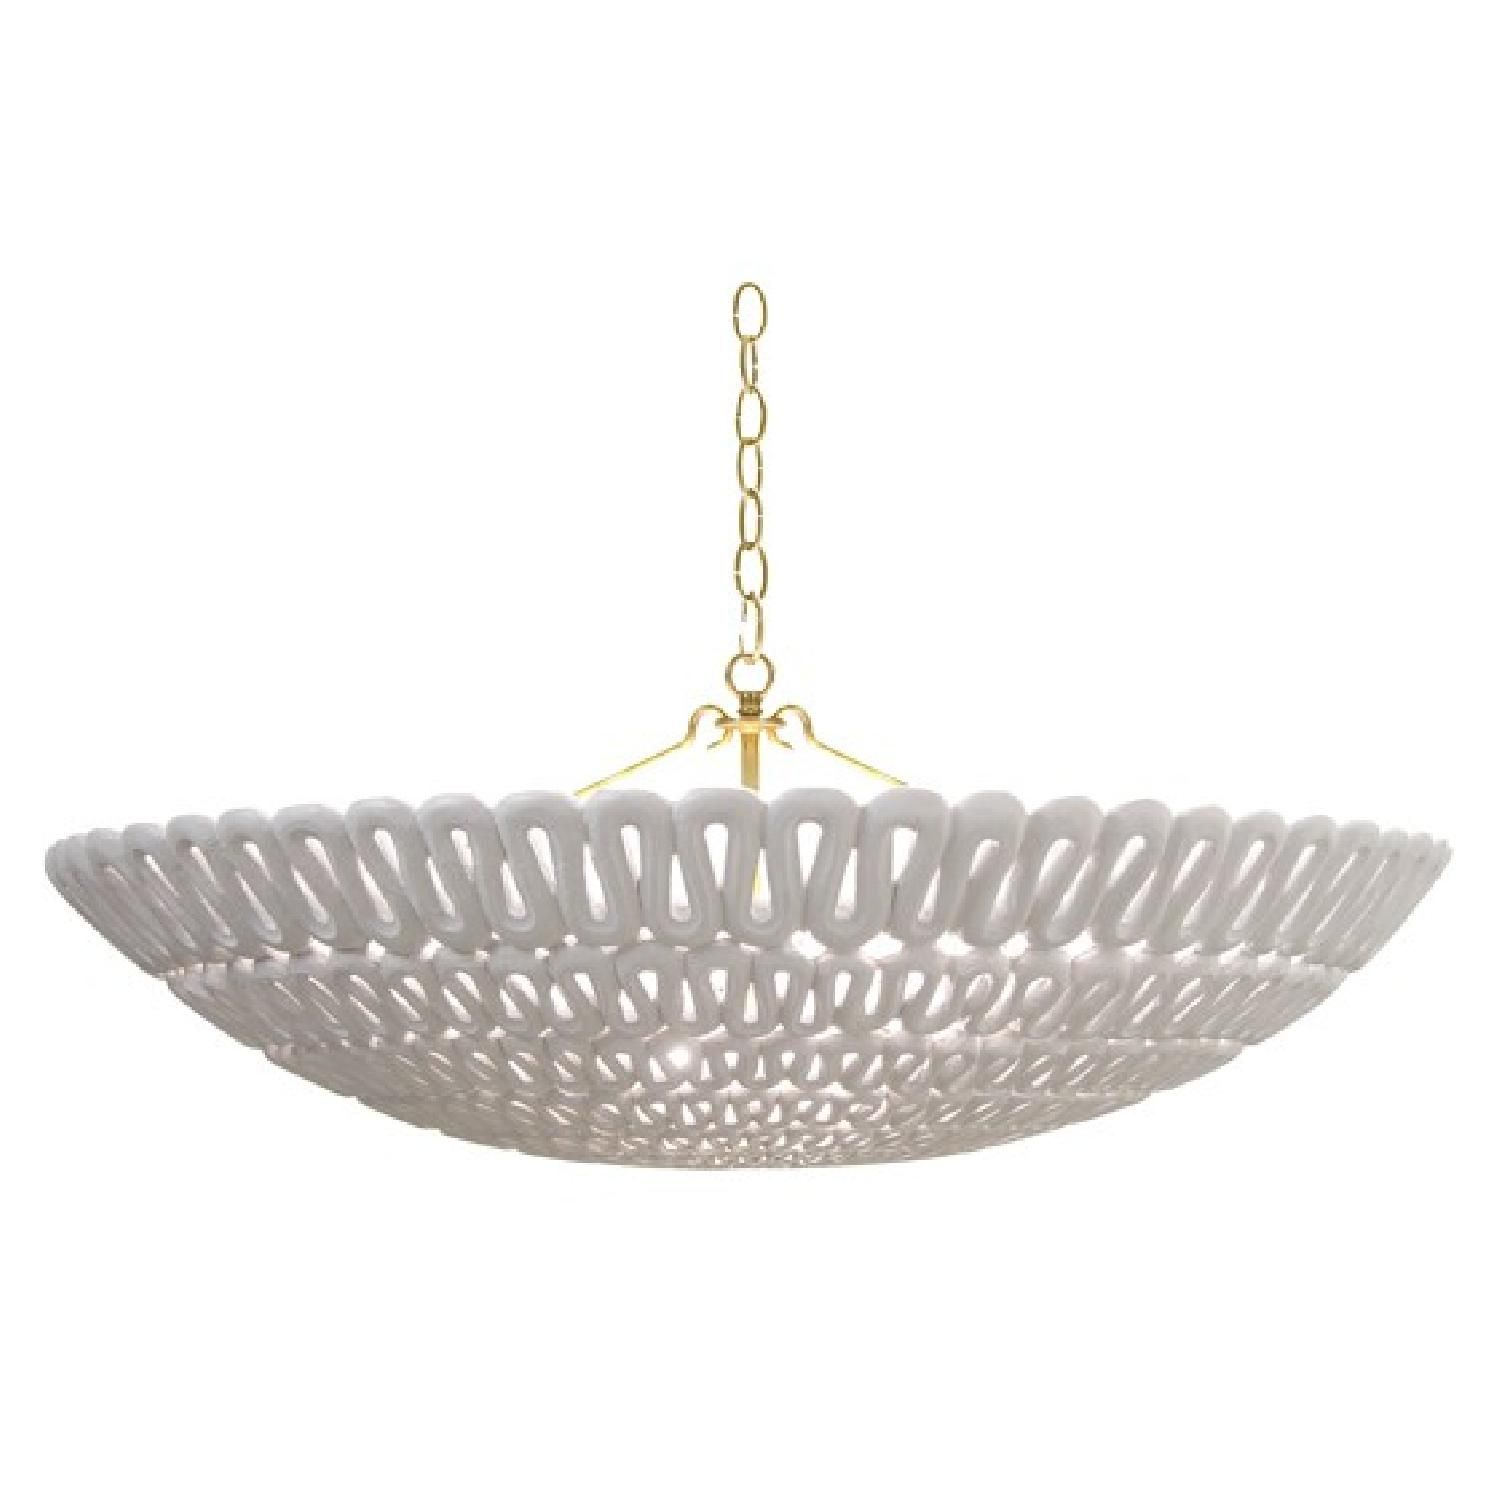 This is a Oly Studio Pipa Bowl Chandelier for $2 500 00 Brand new